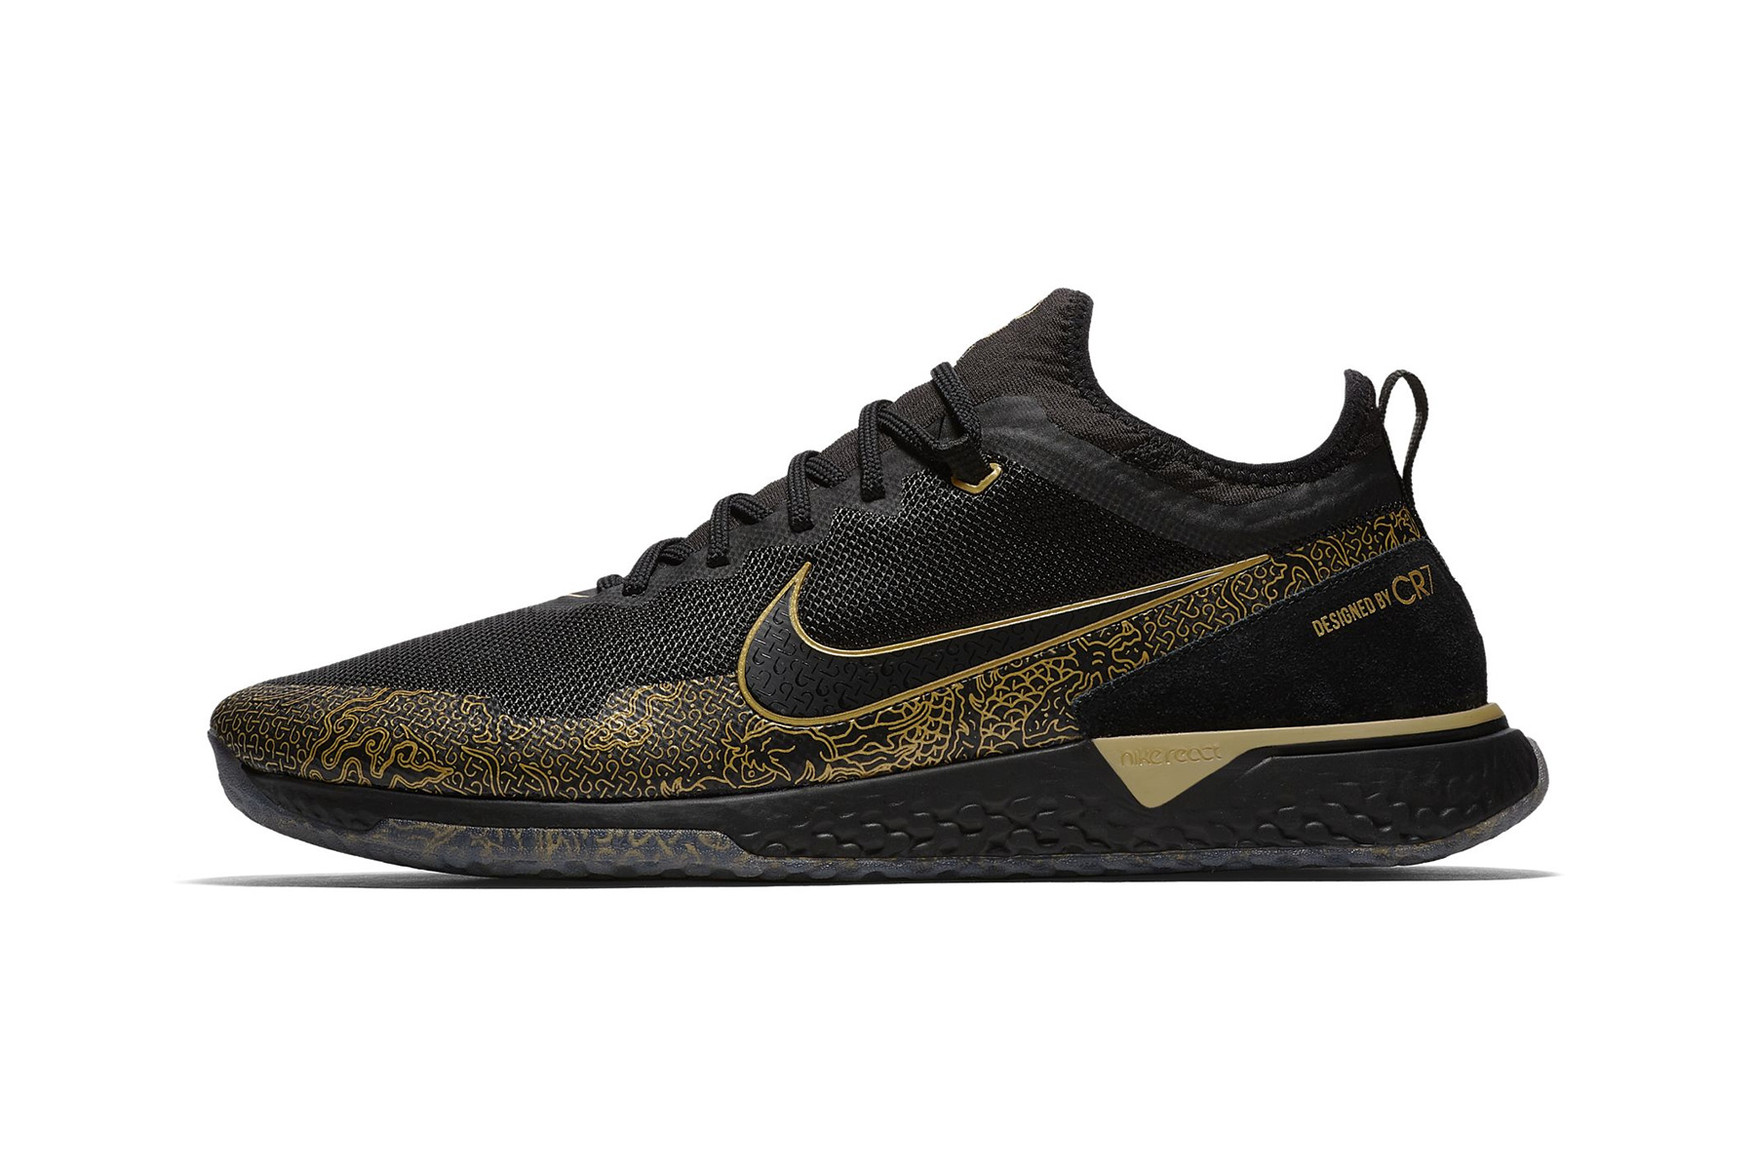 christiano-ronaldo-nike-fc-cr7-black-metallic-gold-01